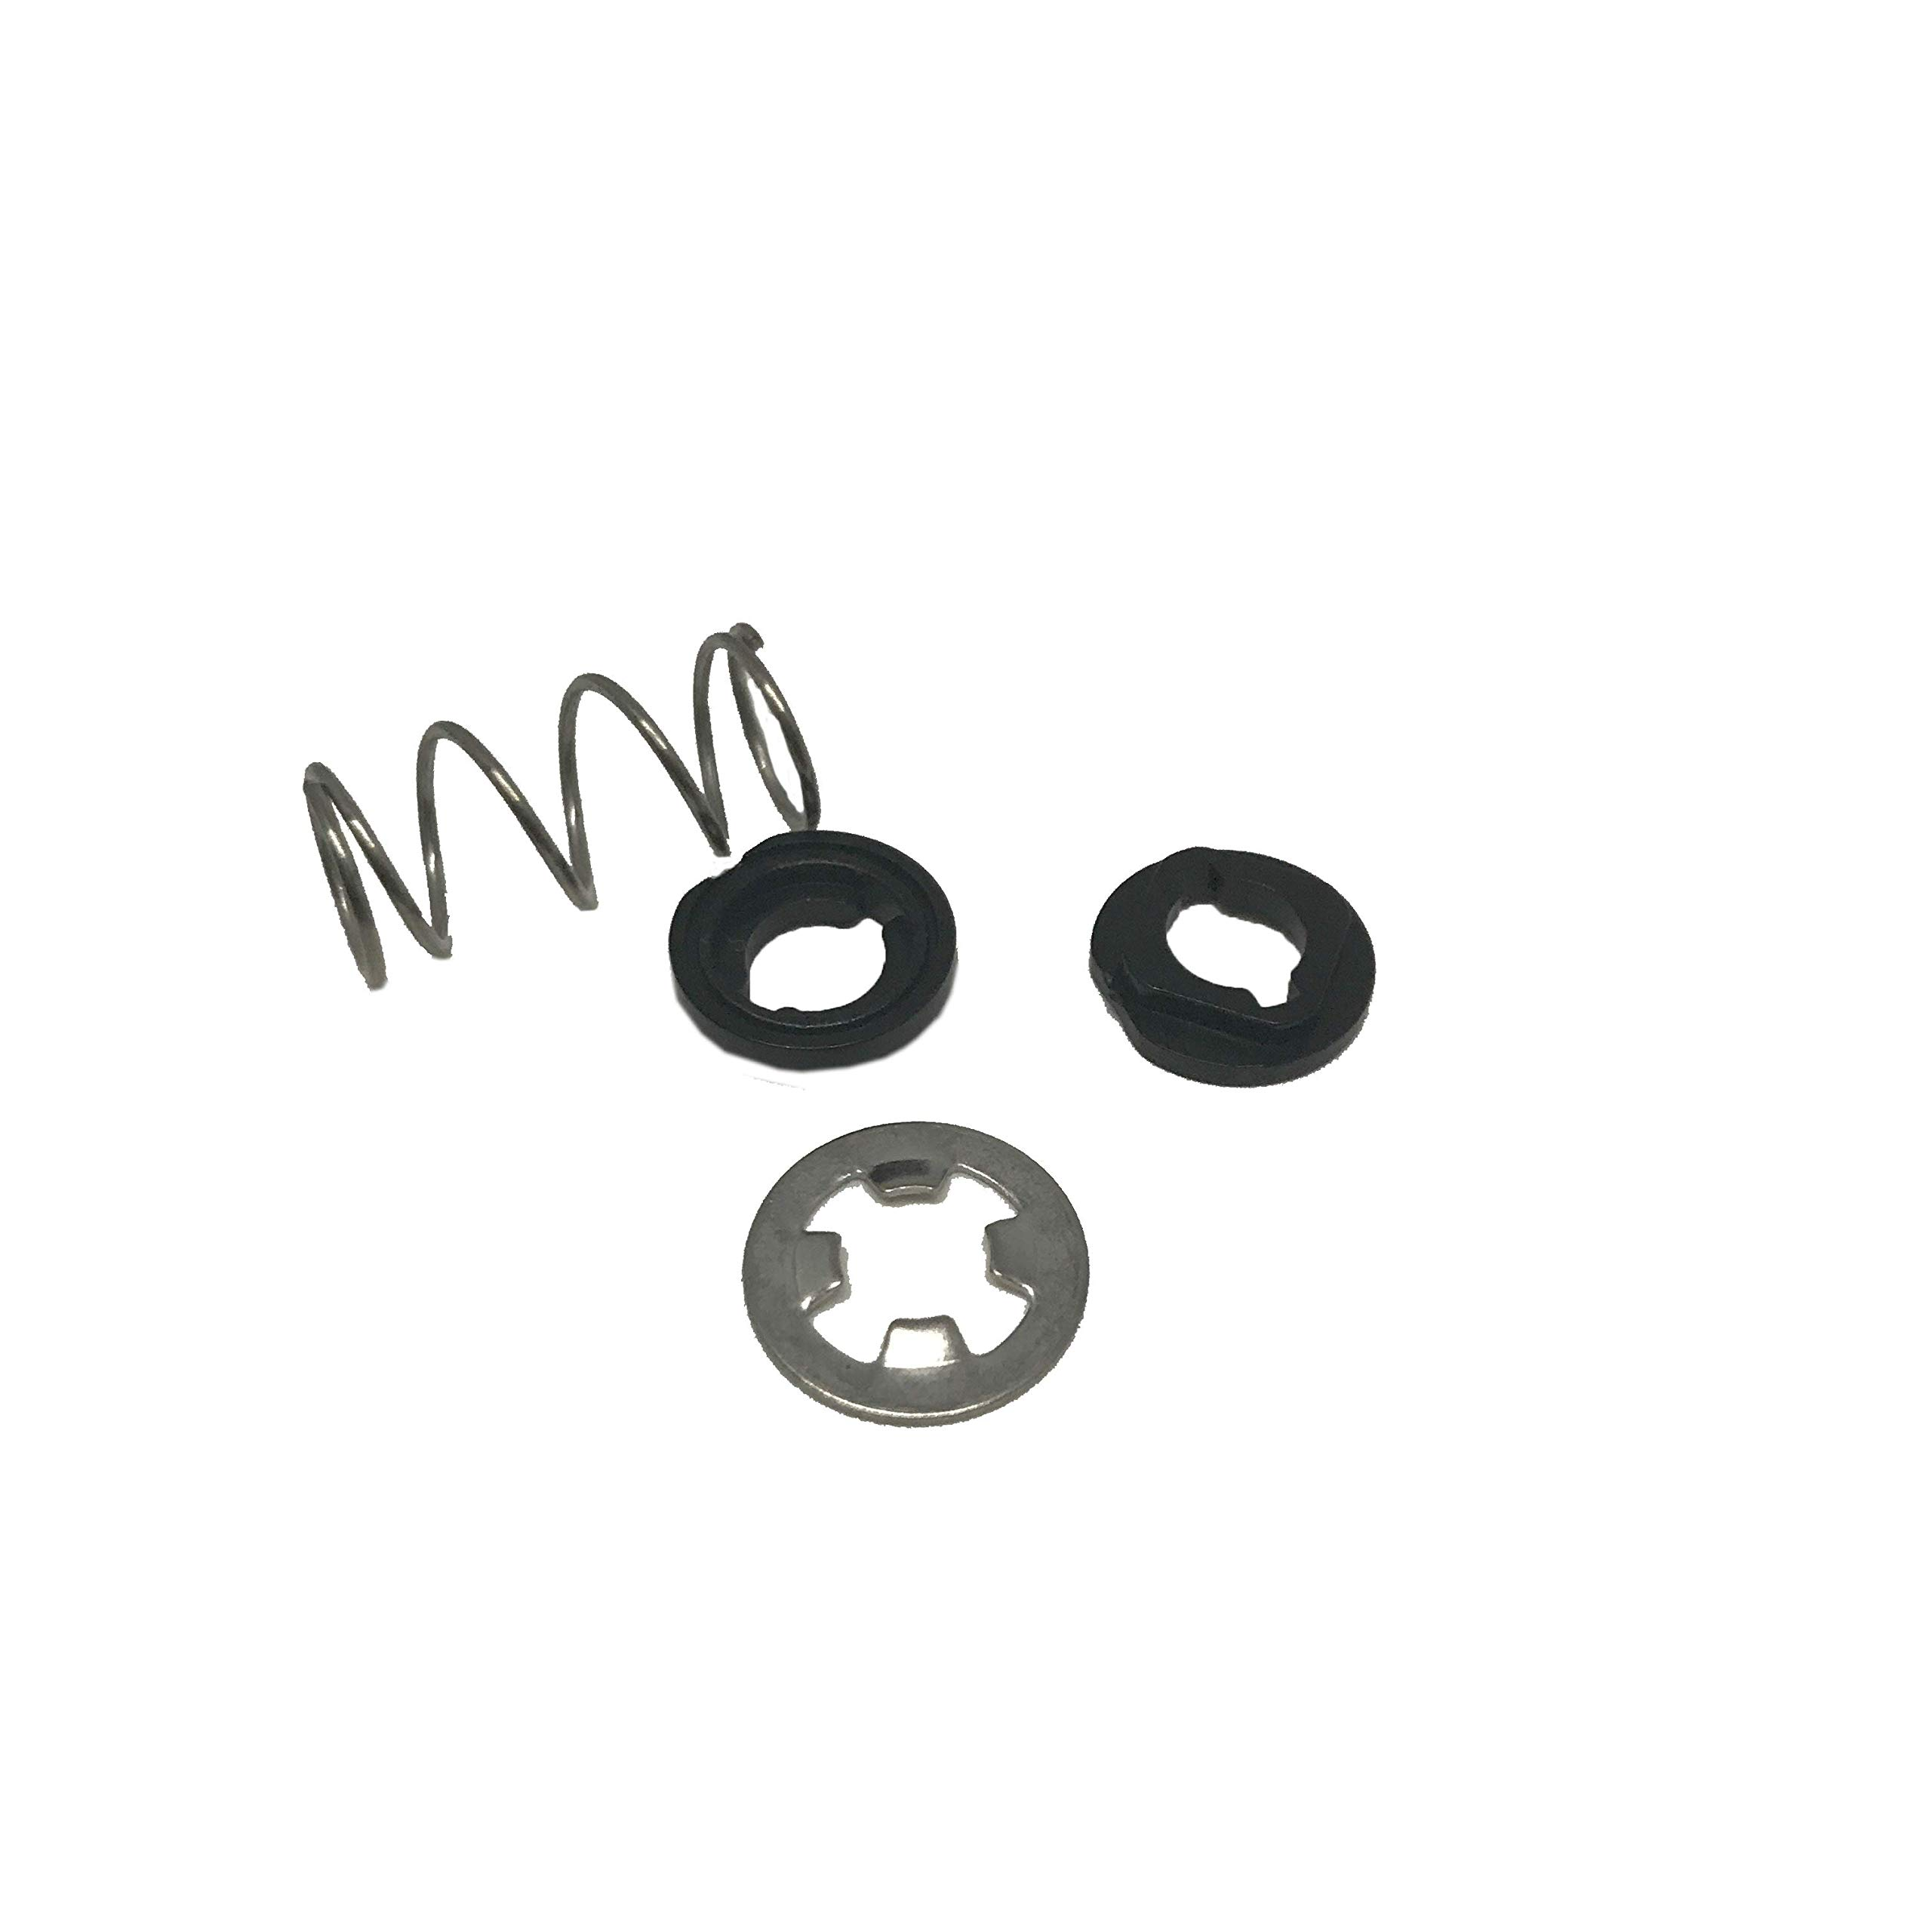 Replacement Washers and Spring for JavaPresse Manual Coffee Grinder - Complete Pack by JavaPresse (Image #1)